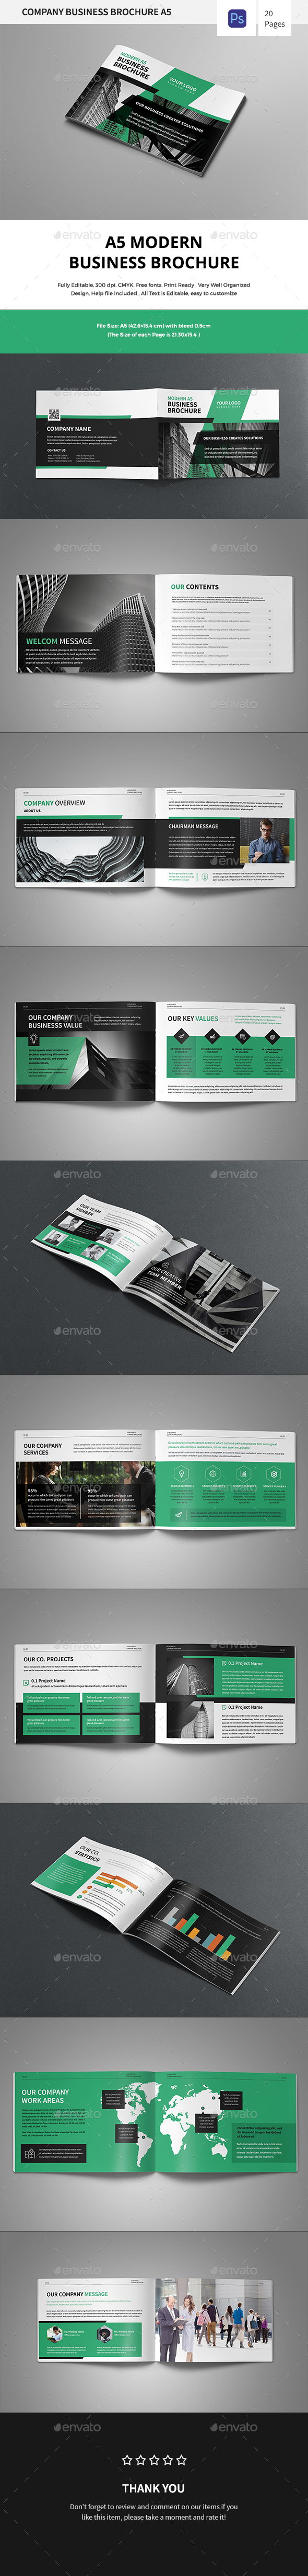 GraphicRiver A5 Corporate Bausiness Brochure 20692947